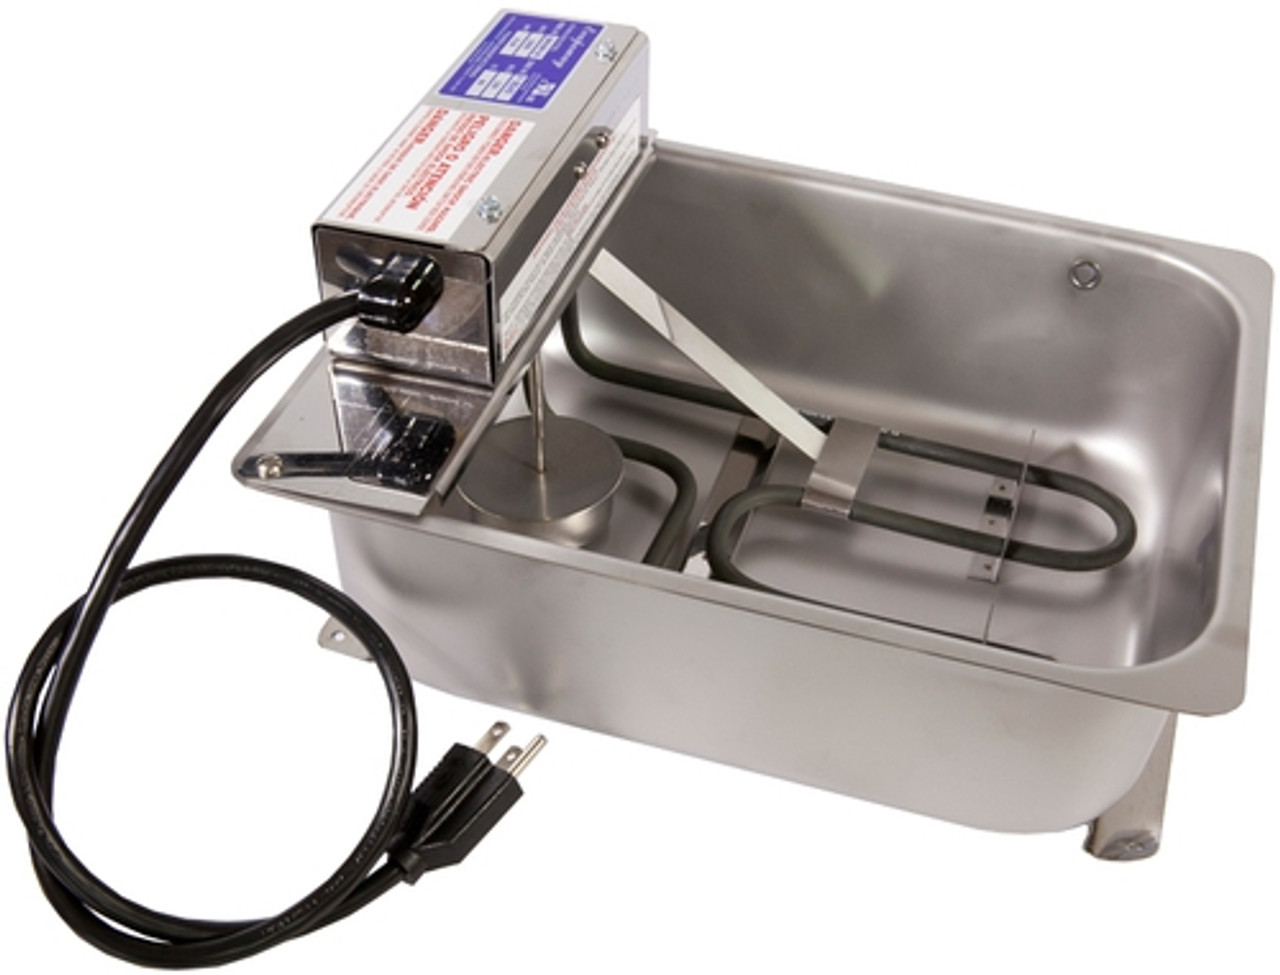 Fisher DM15WW-1D Commercial Refrigeration Condesnsate Evaporator Pan